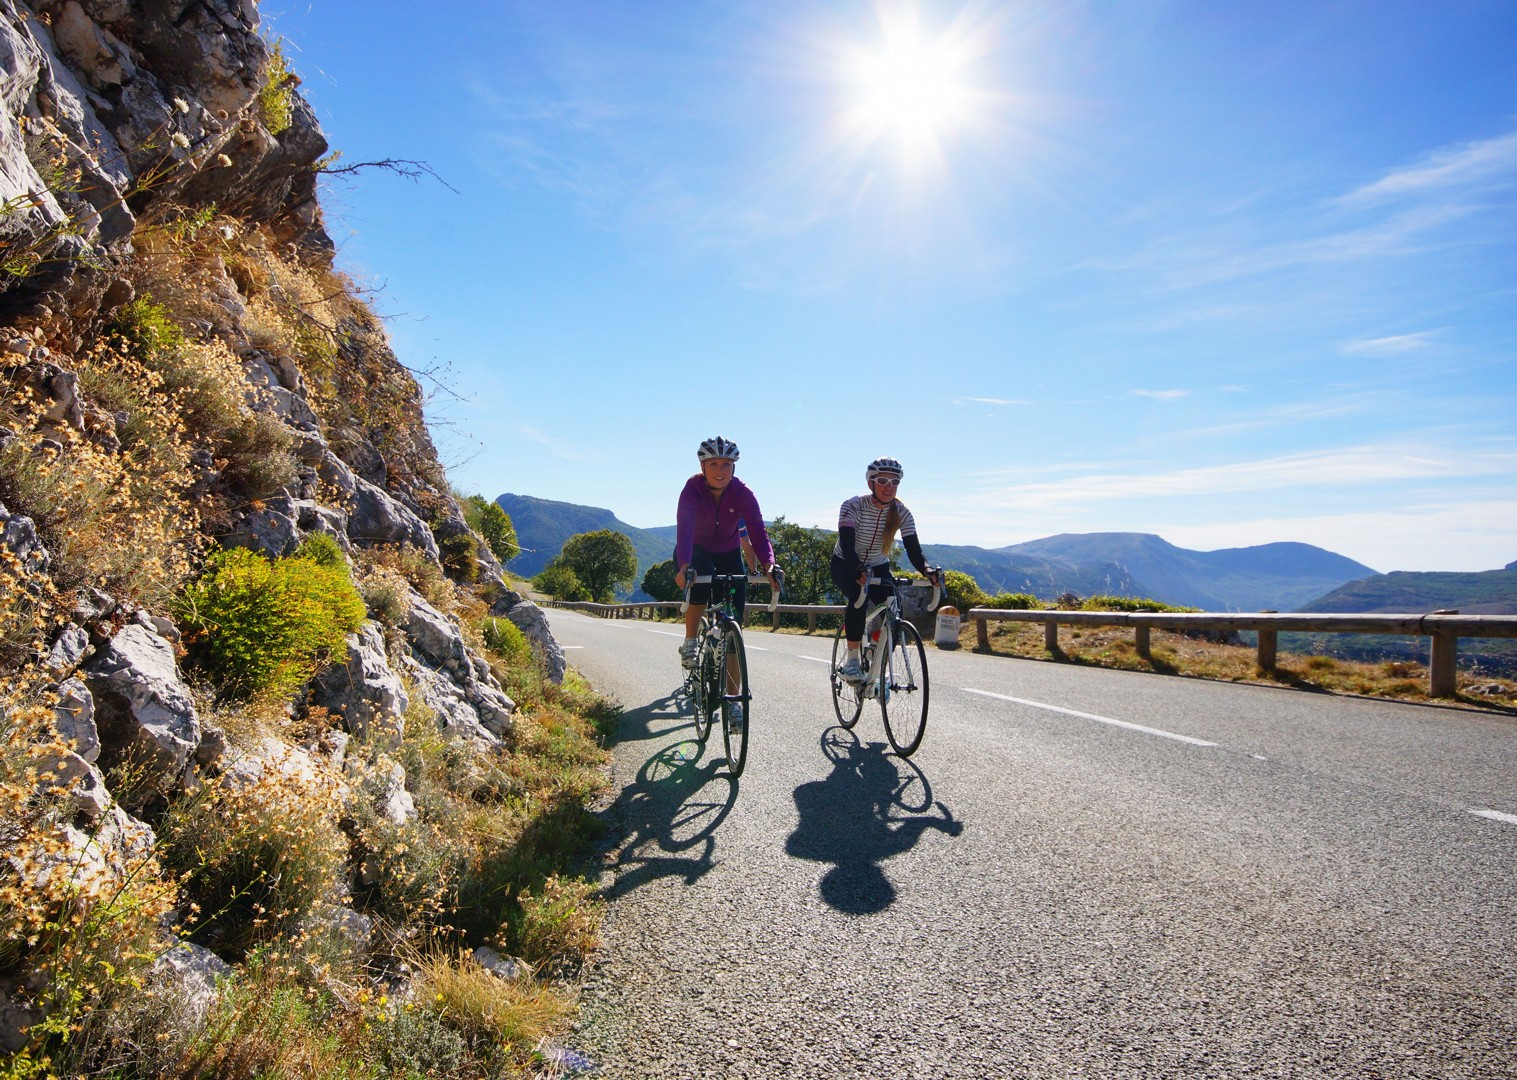 france-st-malo-guided-road-cycling.jpg - France - St Malo to Nice Classic (15 days) - Guided Road Cycling Holiday - Road Cycling